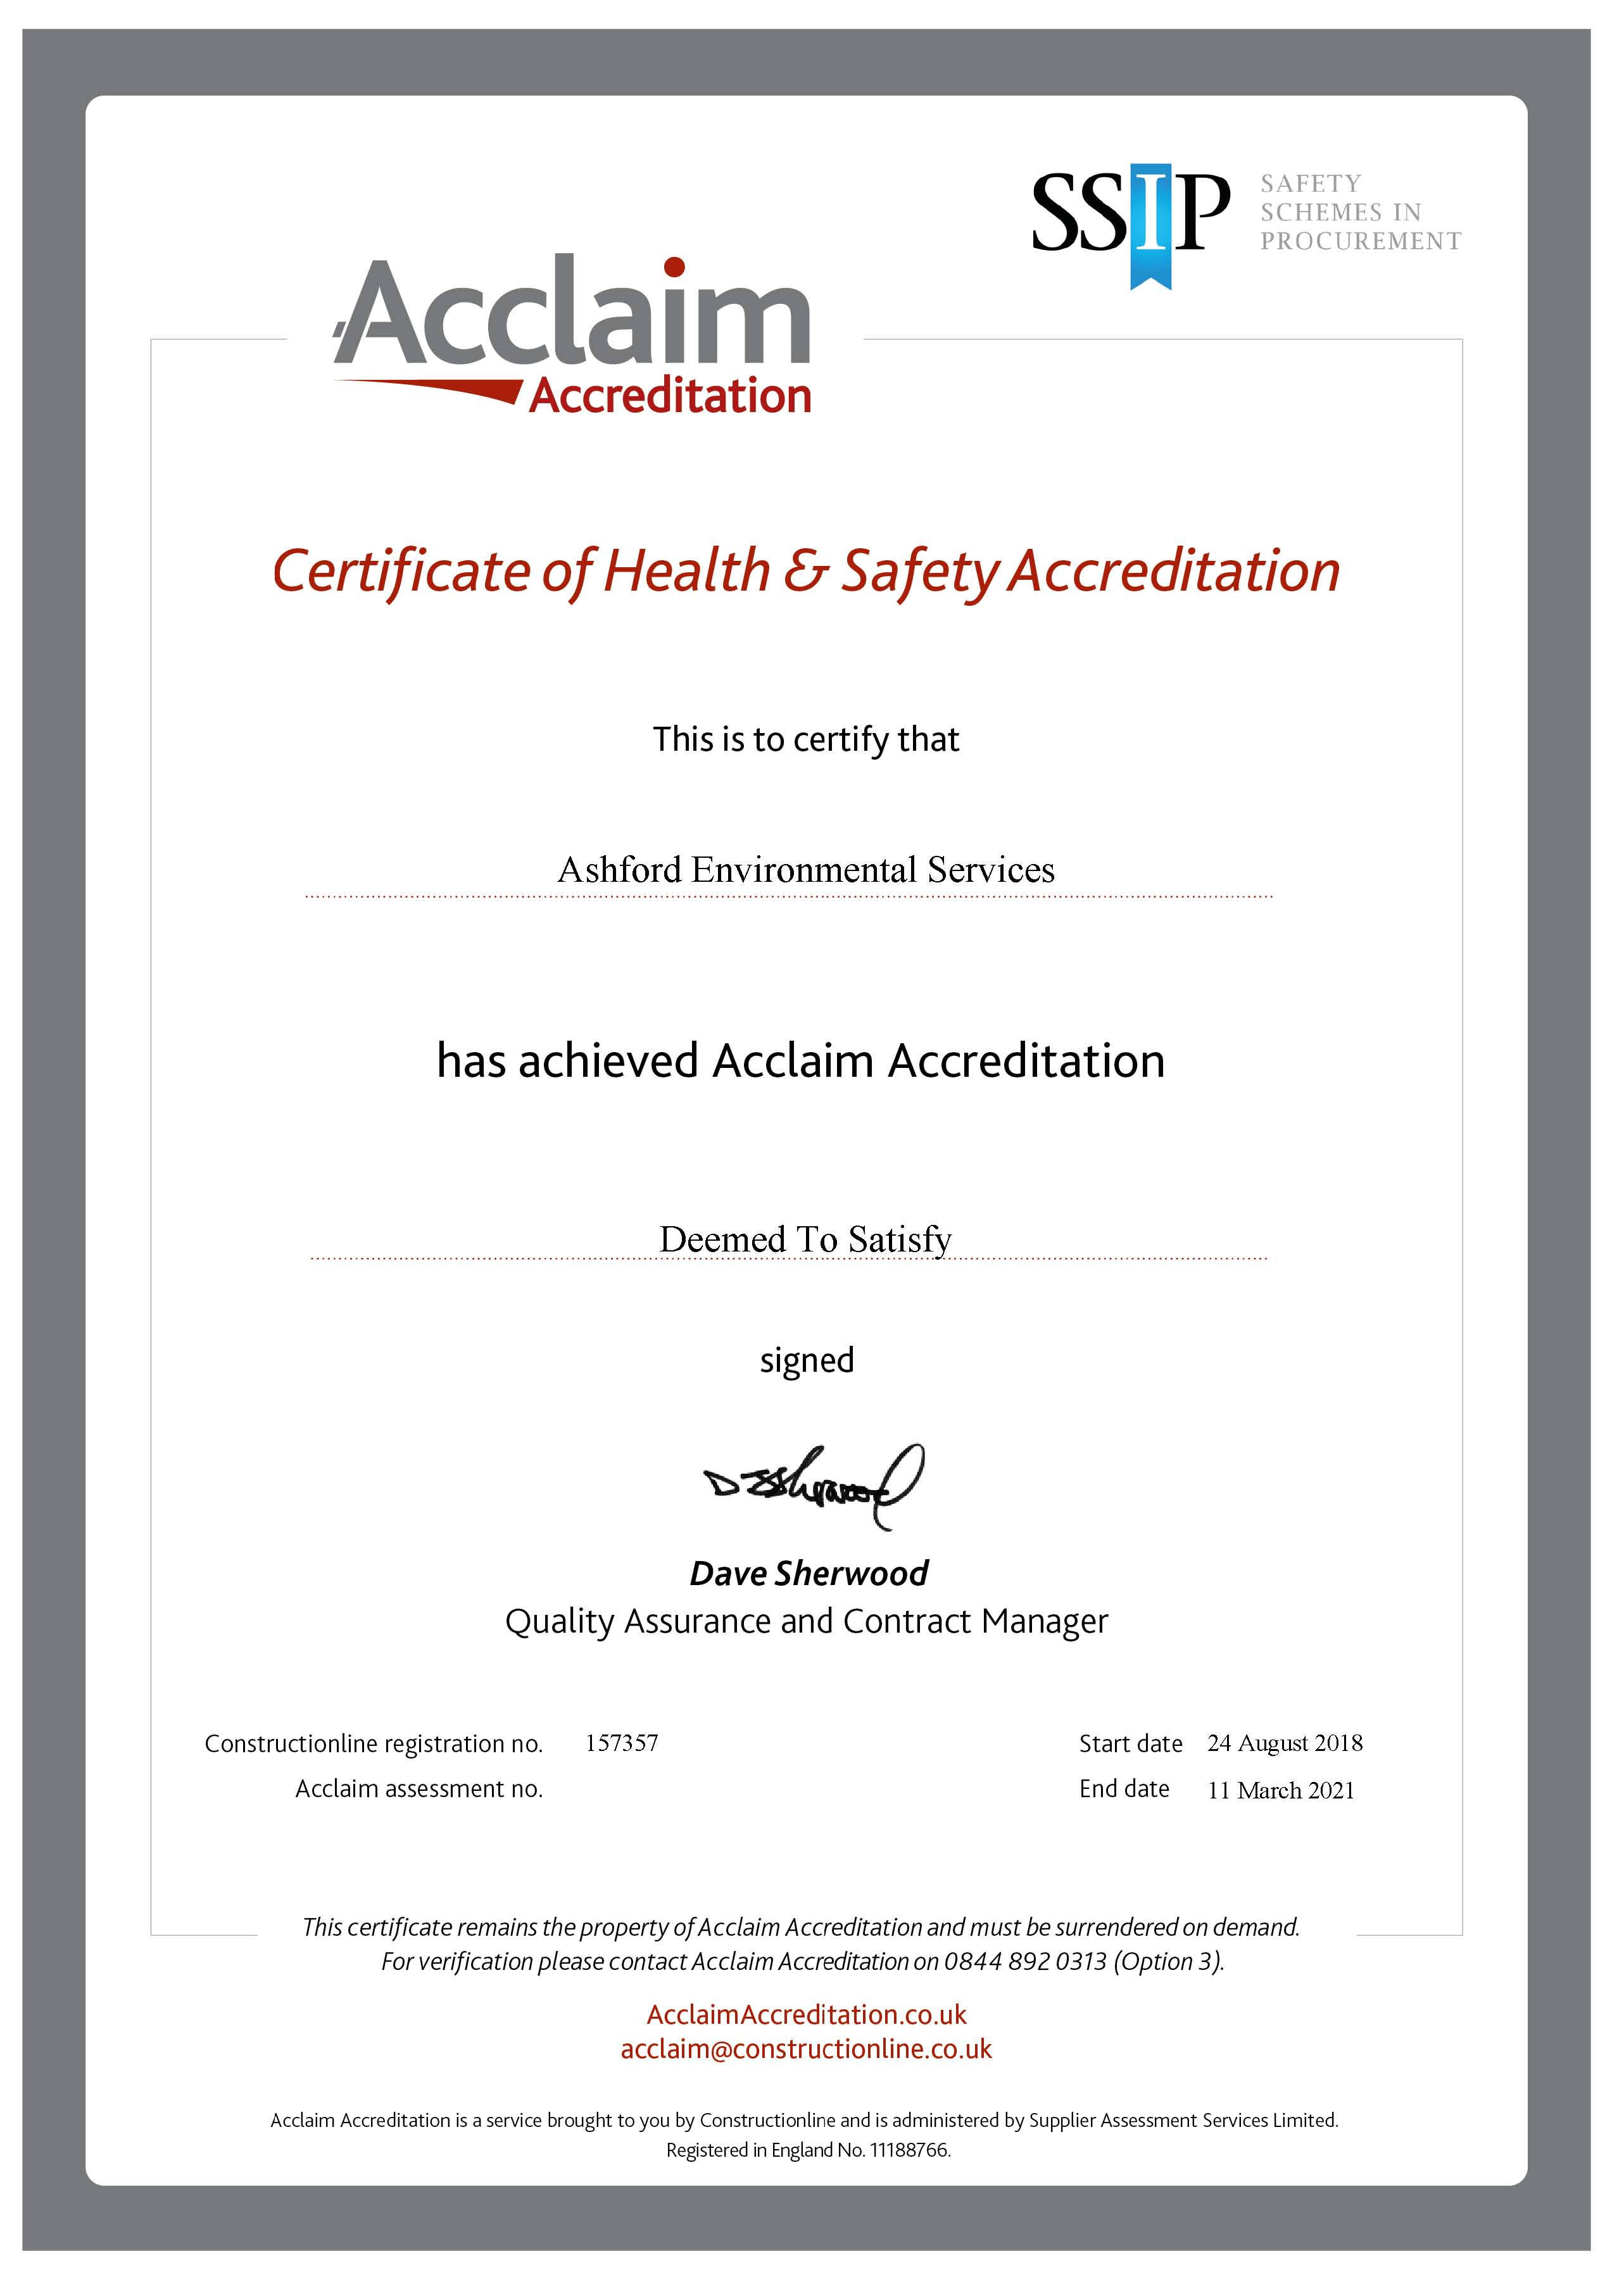 Acclaim Certificate Expiry March 2021